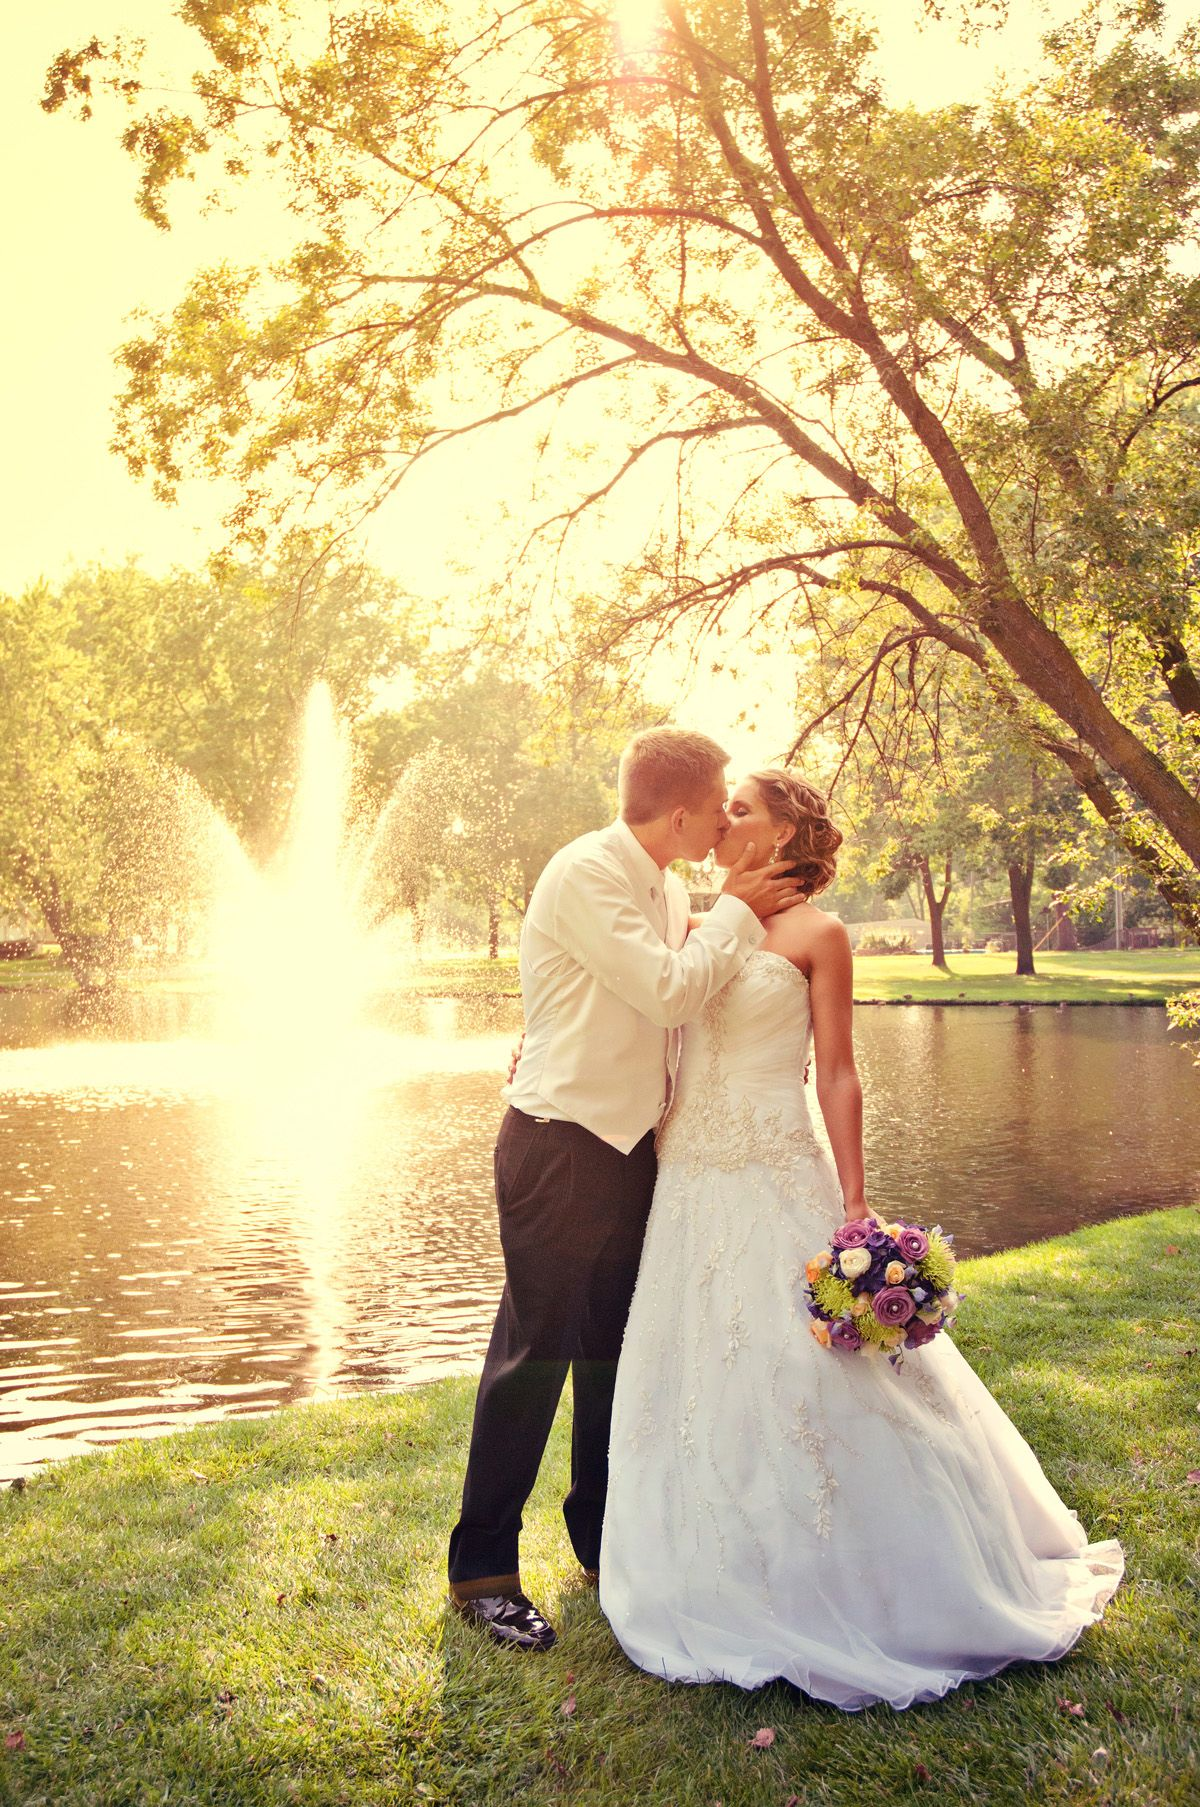 So beautiful with the fountain in the background! Photo by Sarah M. #weddingphotographersMN #summerwedding